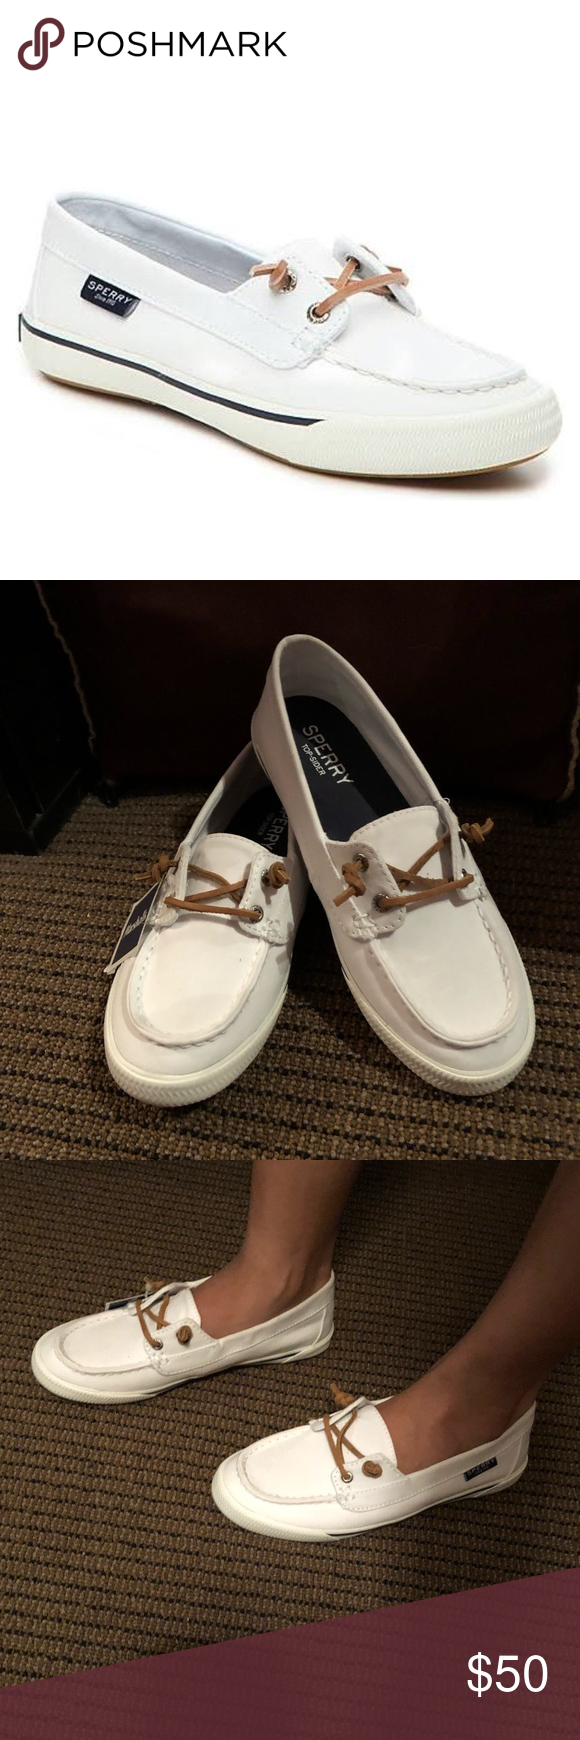 8ad76027d2a2 Sperry Top-Spider Lounge Away White Boat Shoes New with department store  tags! Size